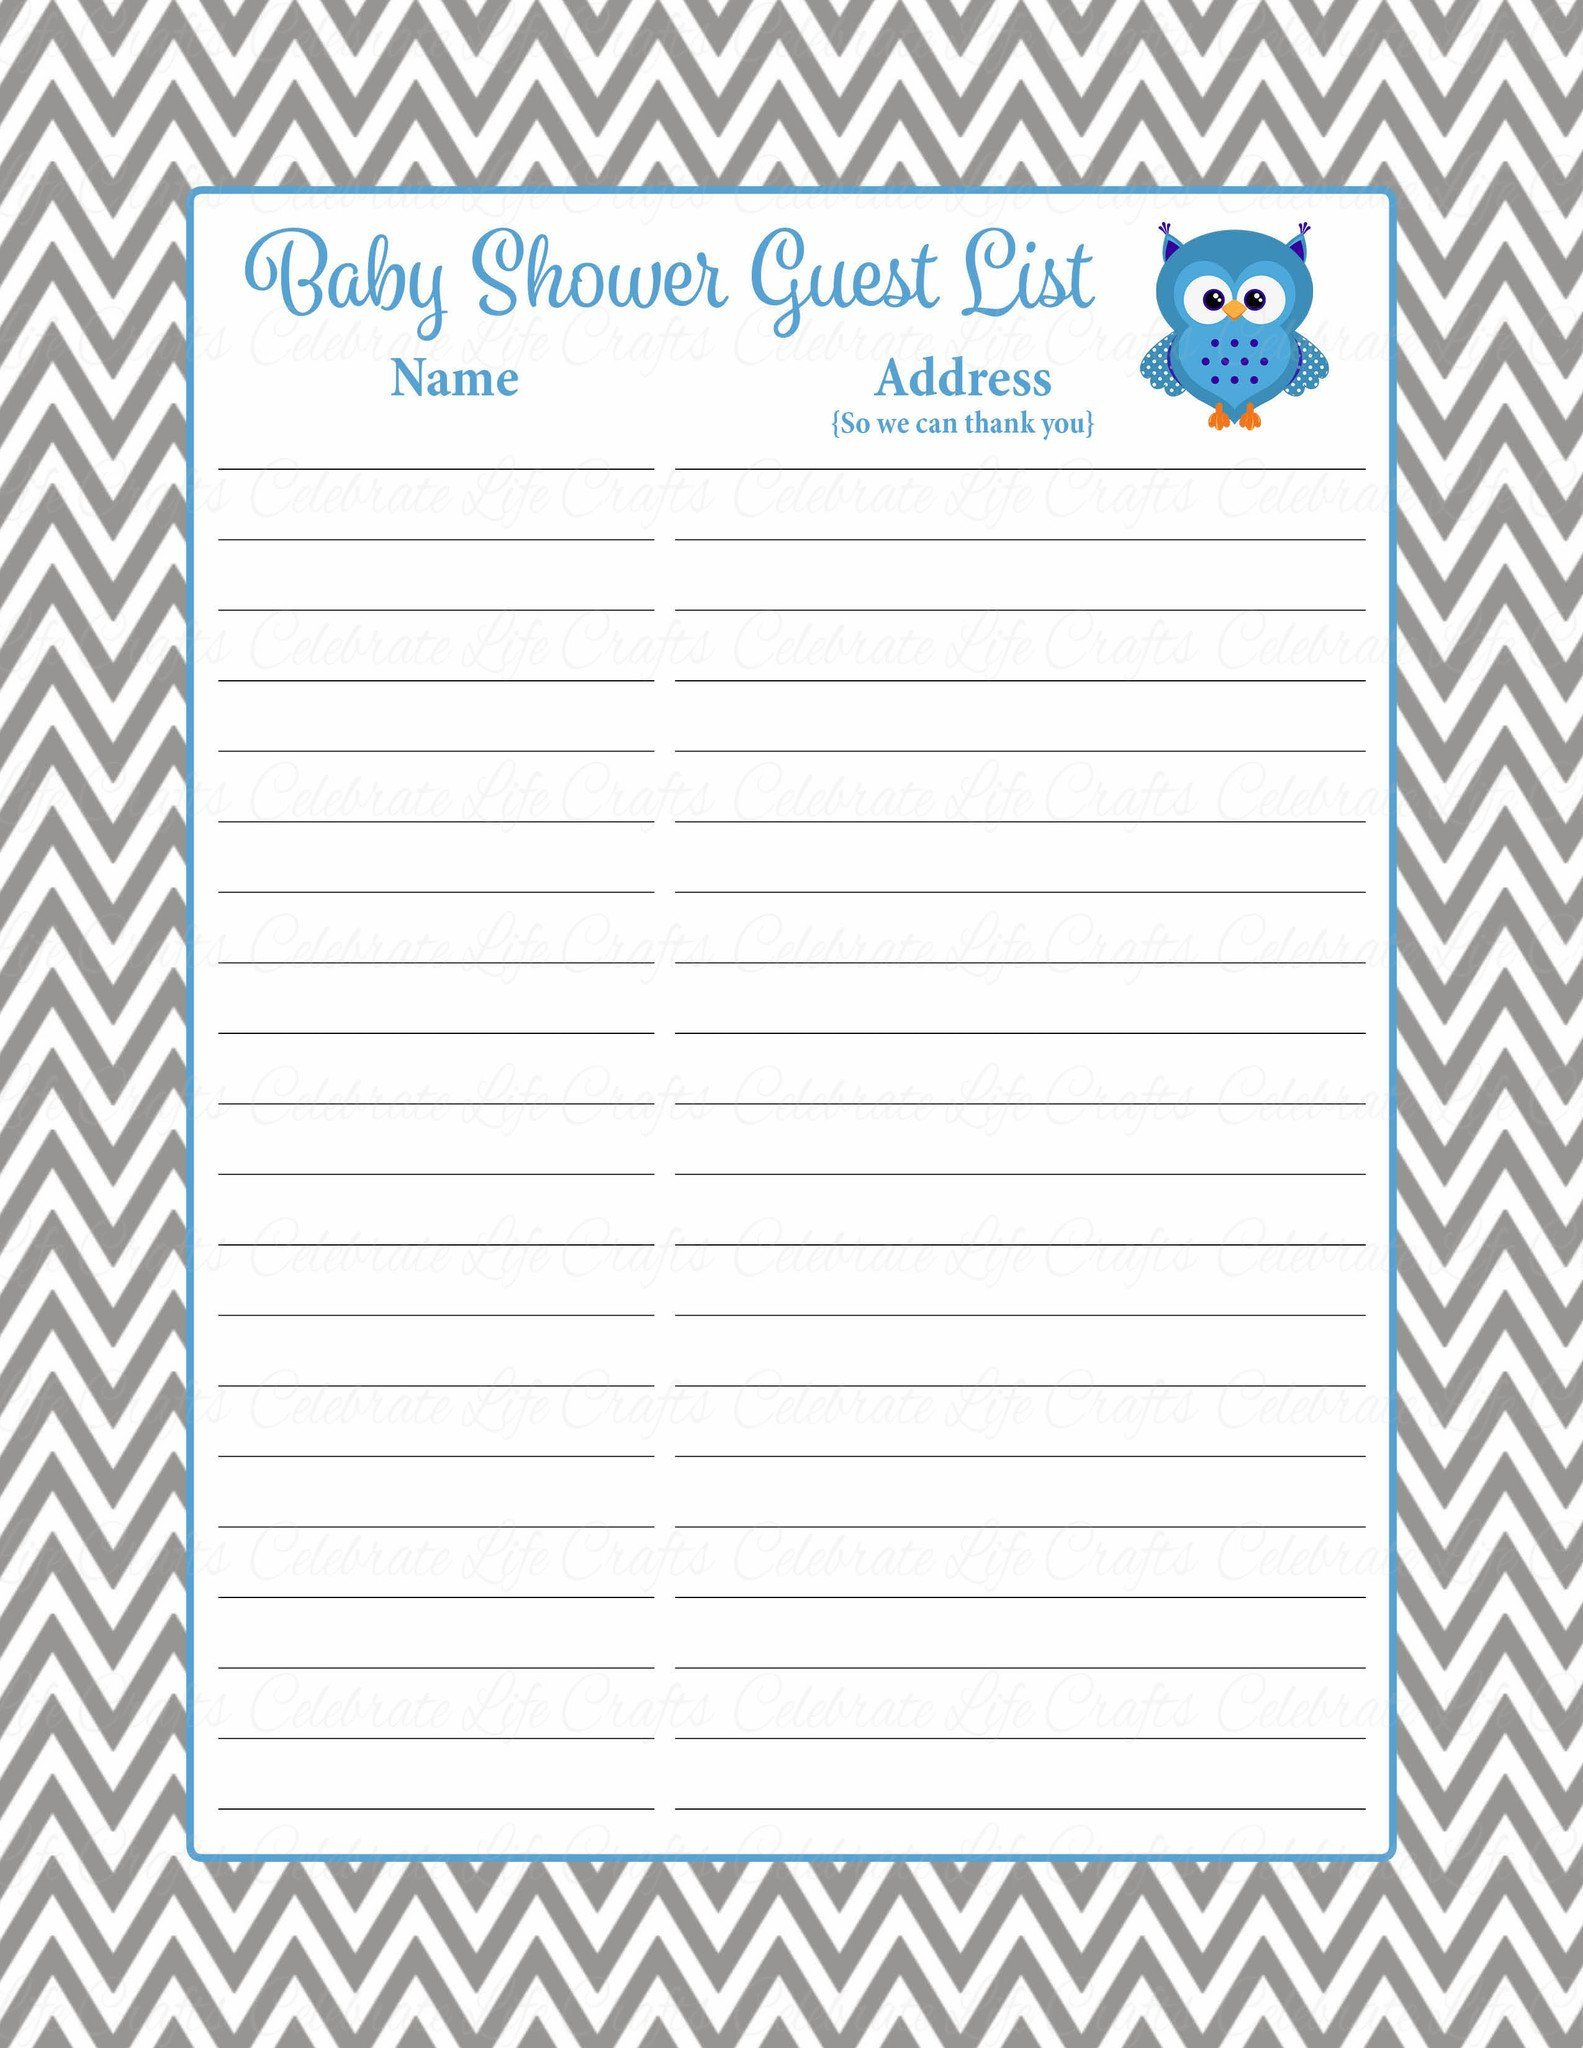 Baby Shower Guest List Baby Shower Guest List Set Owl Baby Shower theme for